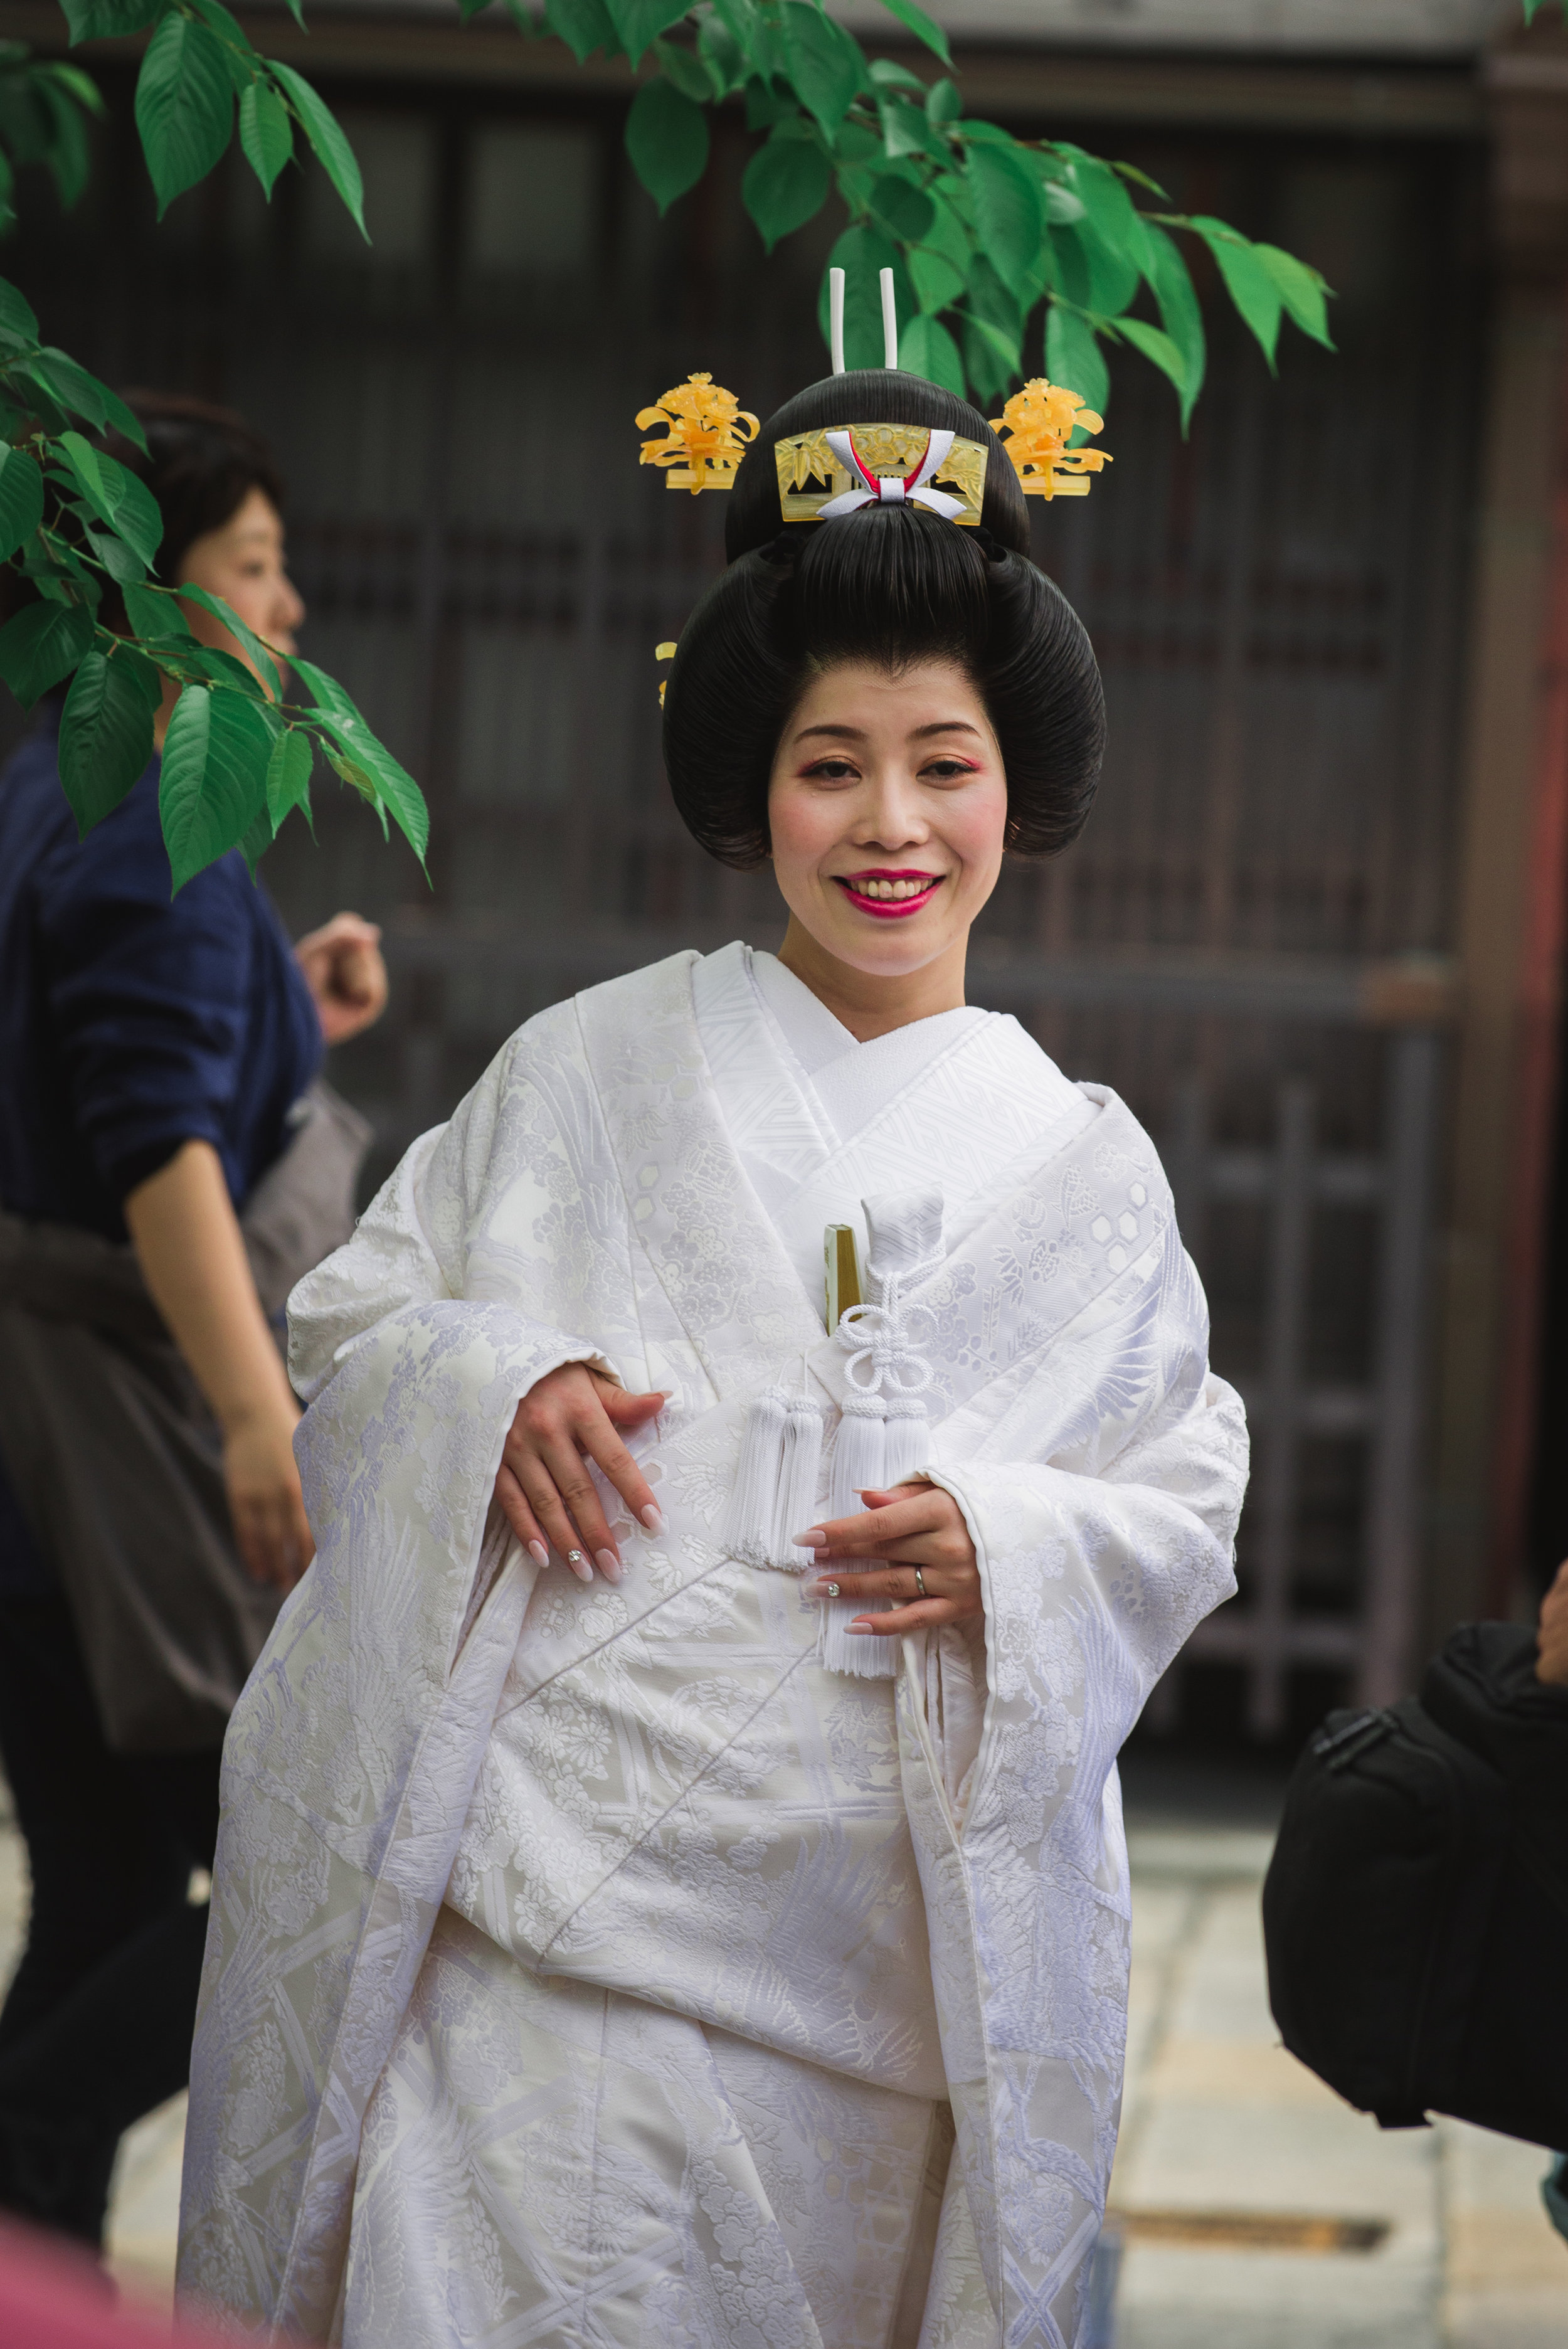 A woman dressed in a bridal kimono for a photo shoot in the city